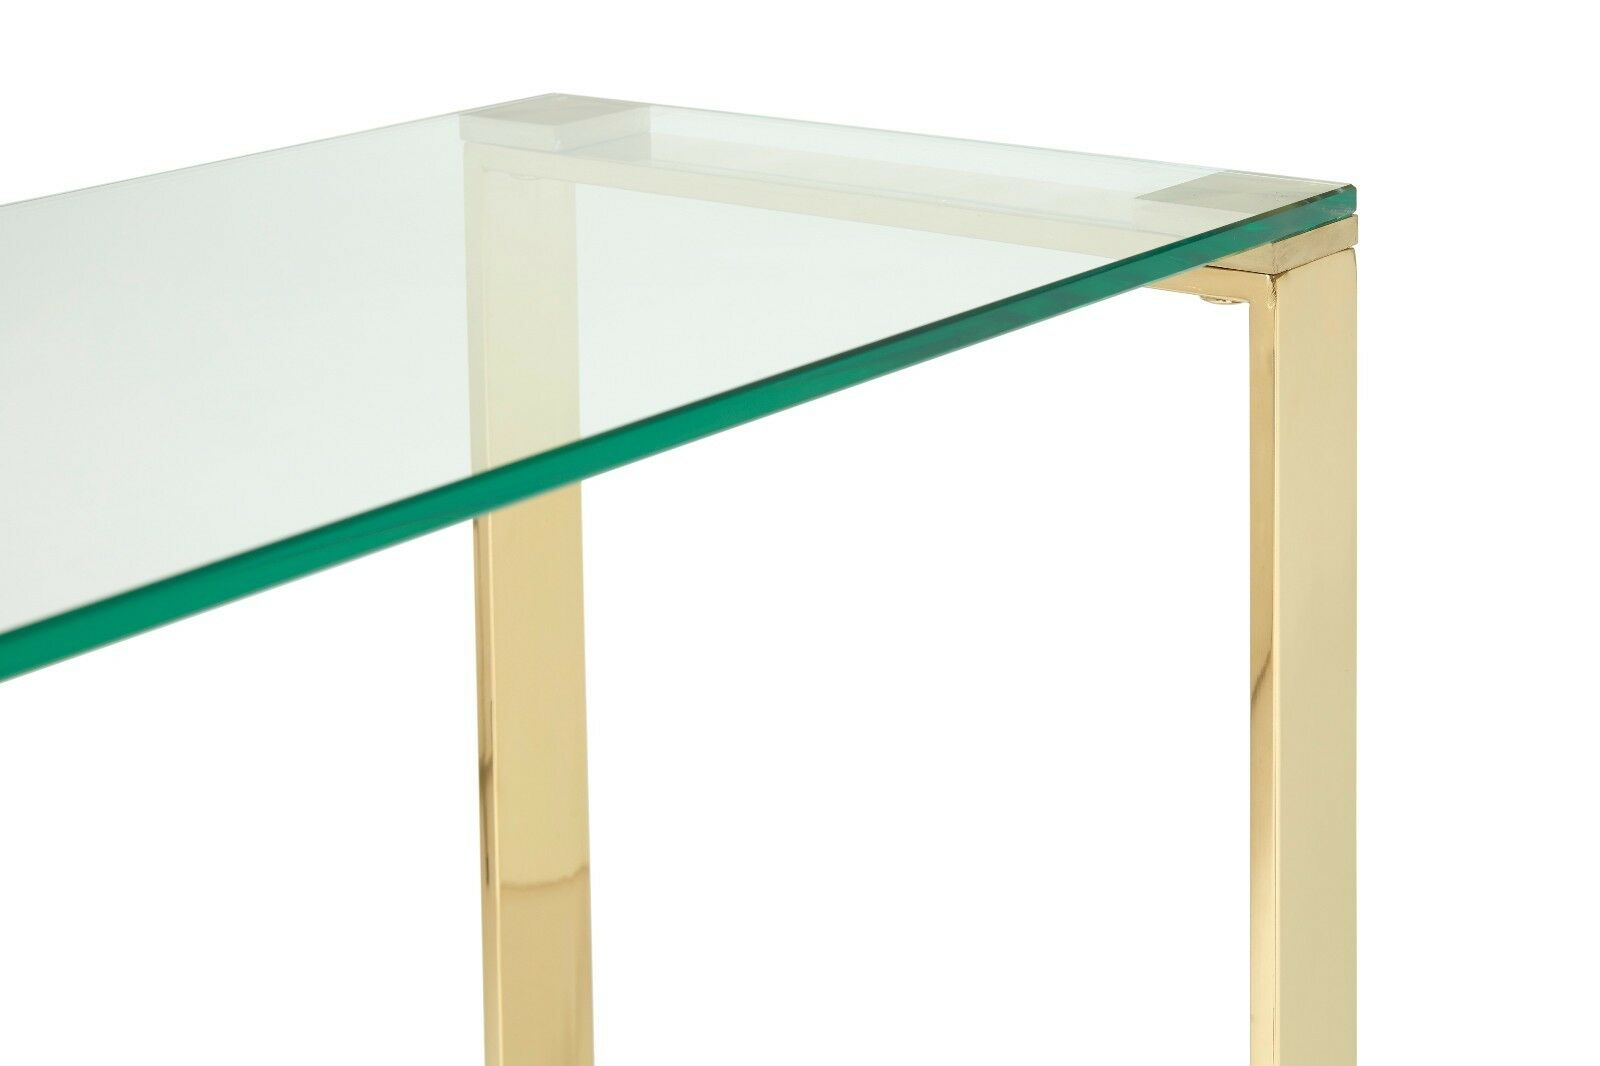 asger glass top console table in steel gold or rose gold metal . asger glass top console table in steel gold or rose gold metal frame